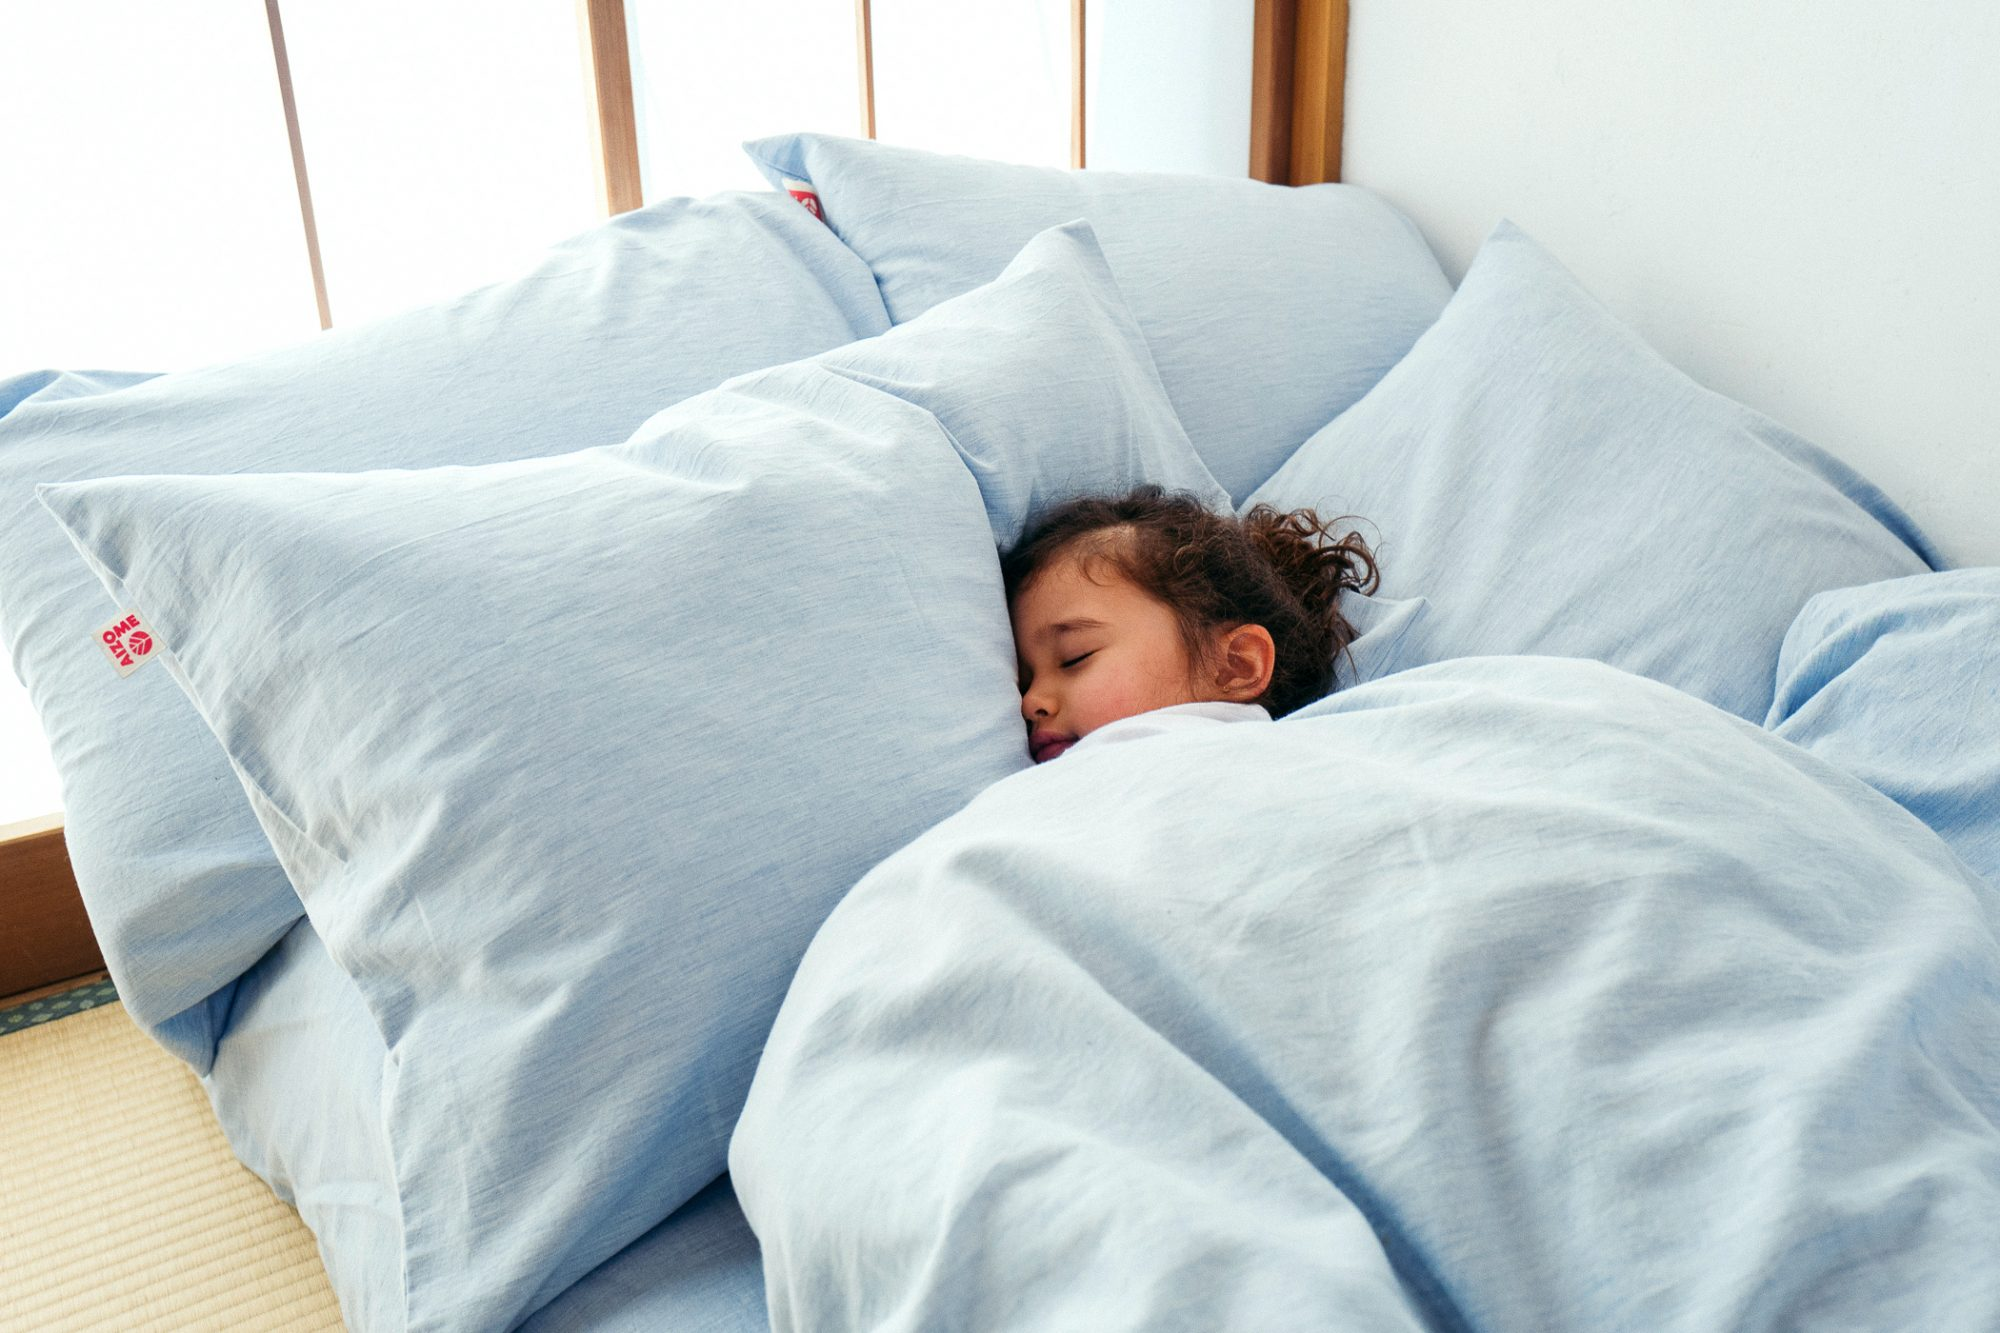 Girl sleeping in Aizome Indigo Dyed Hypoallergenic Bedding